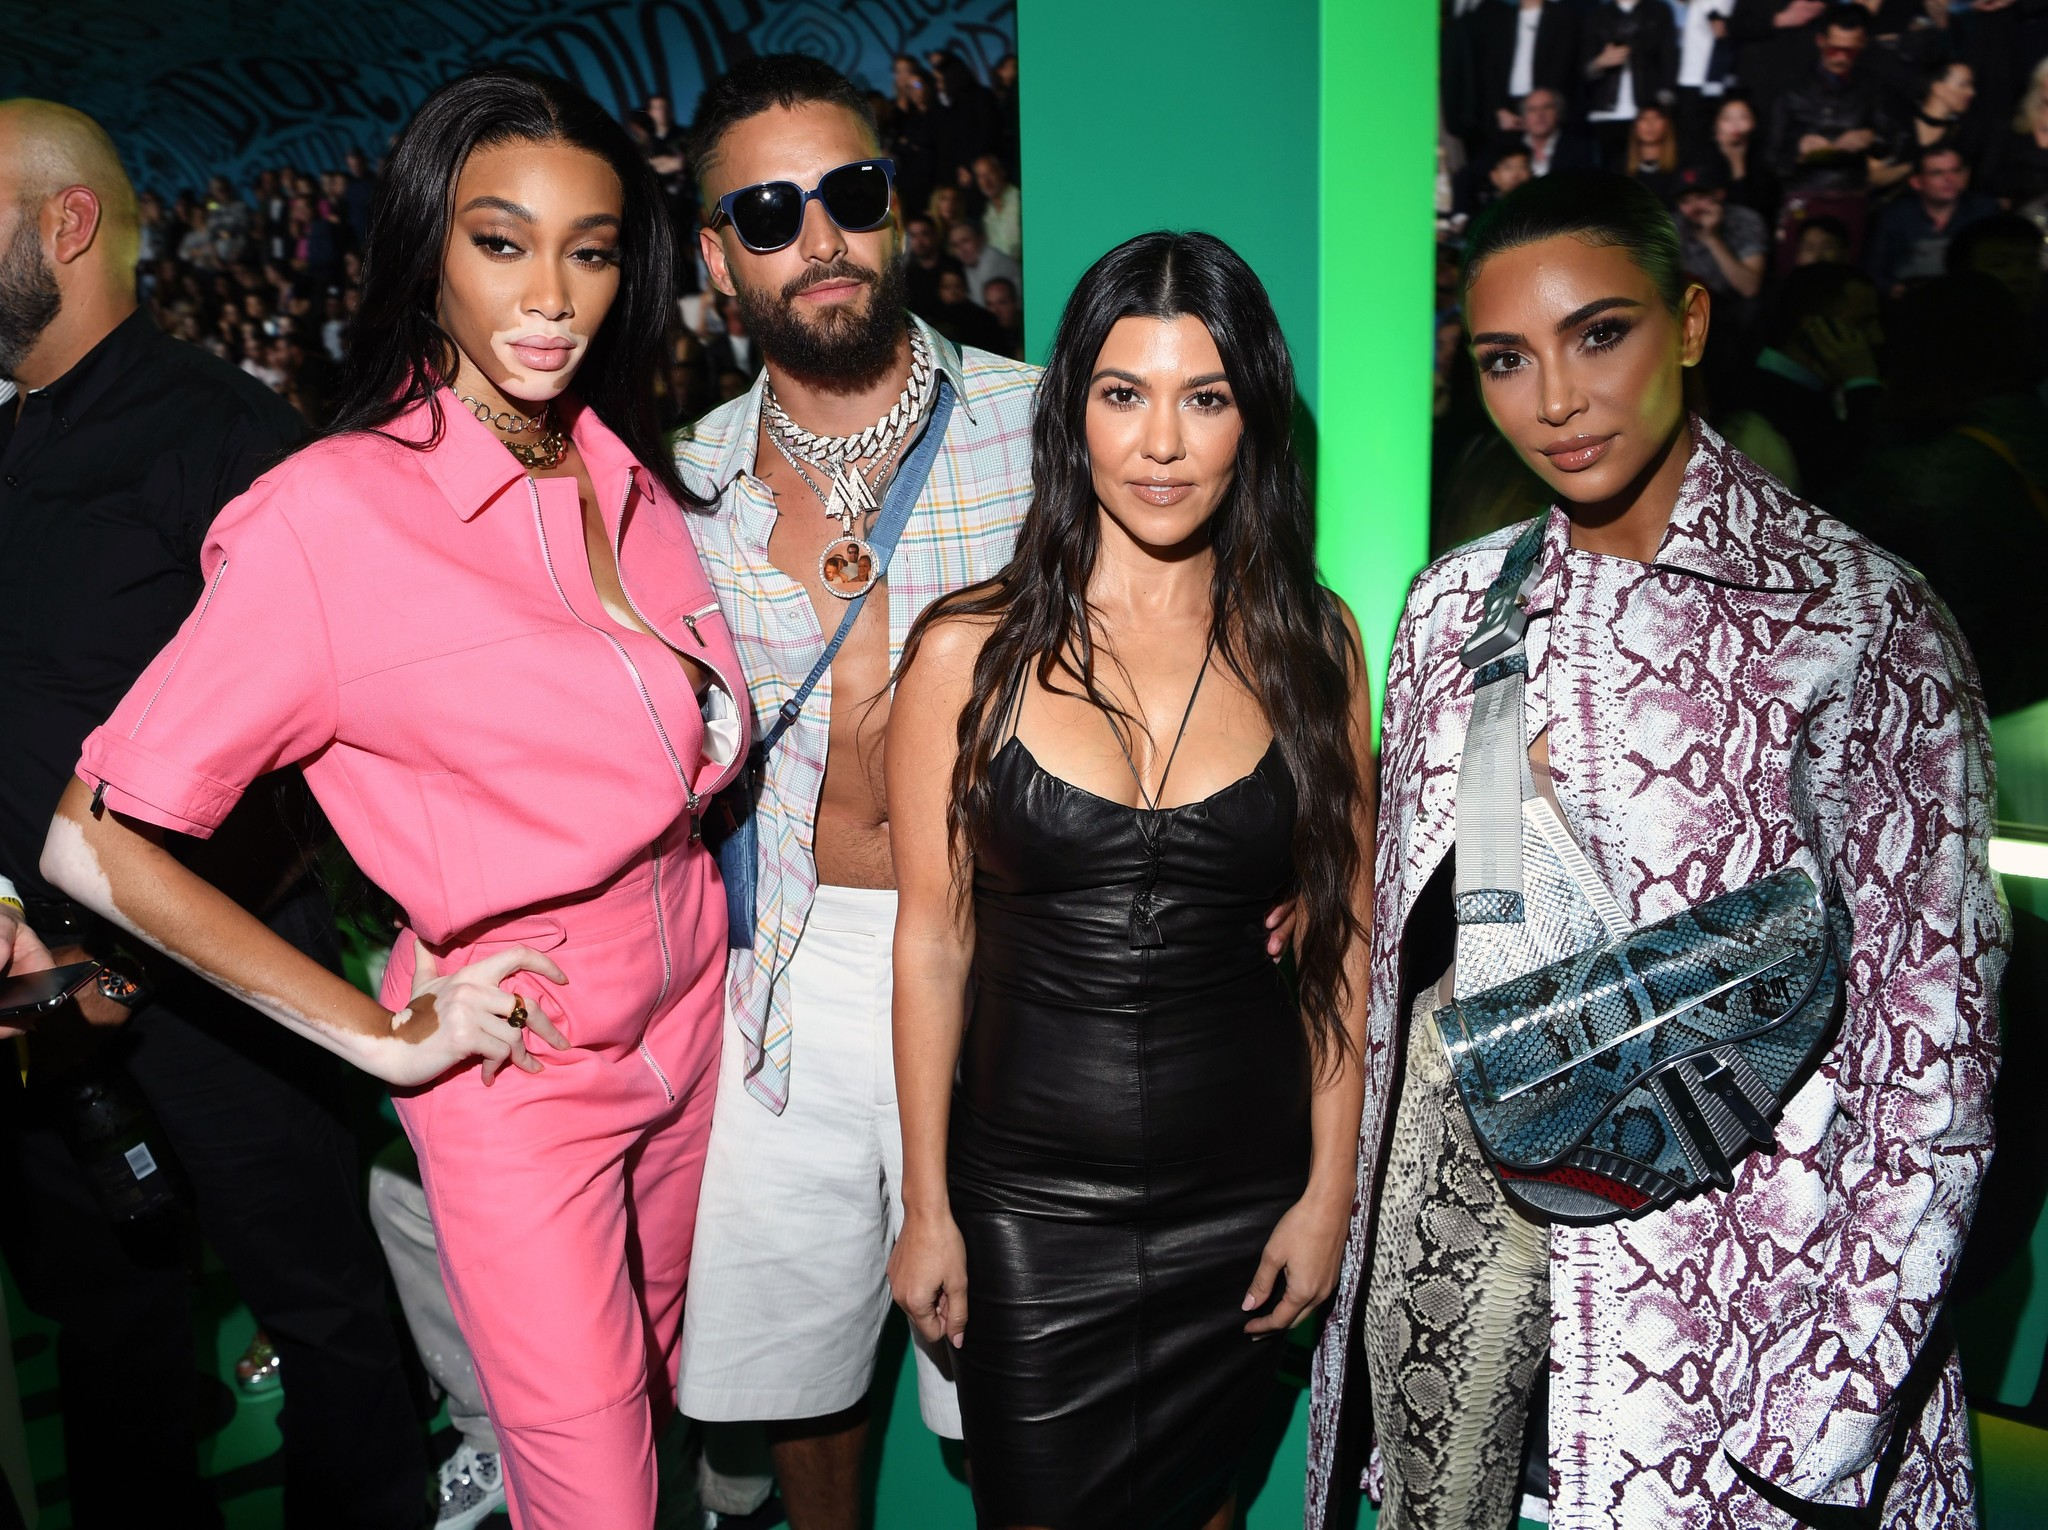 Winnie Harlow, Maluma, Kourtney Kardashian and Kim Kardashian West